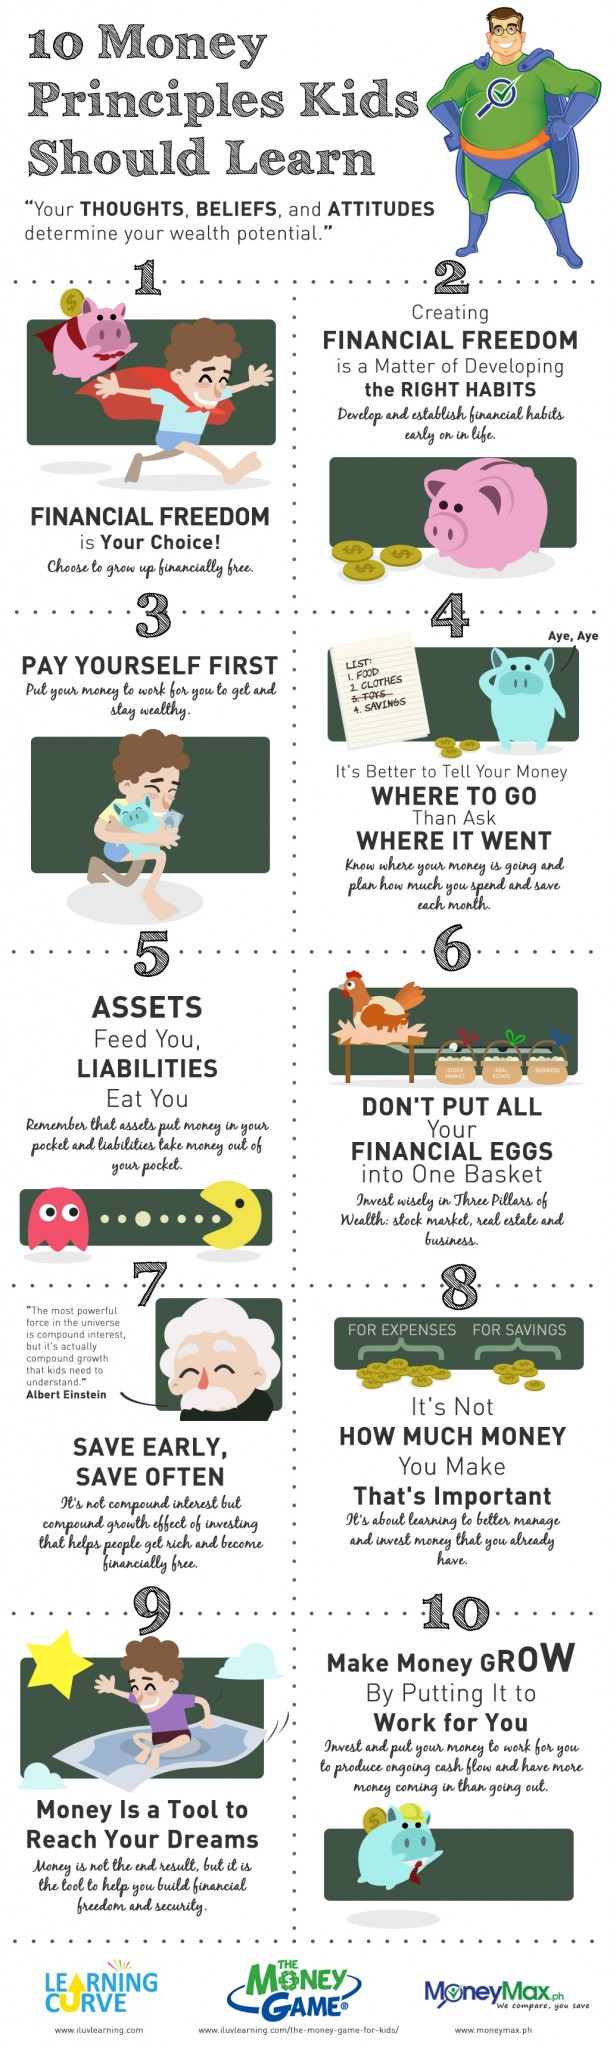 10 Money Principles Kids Should Learn